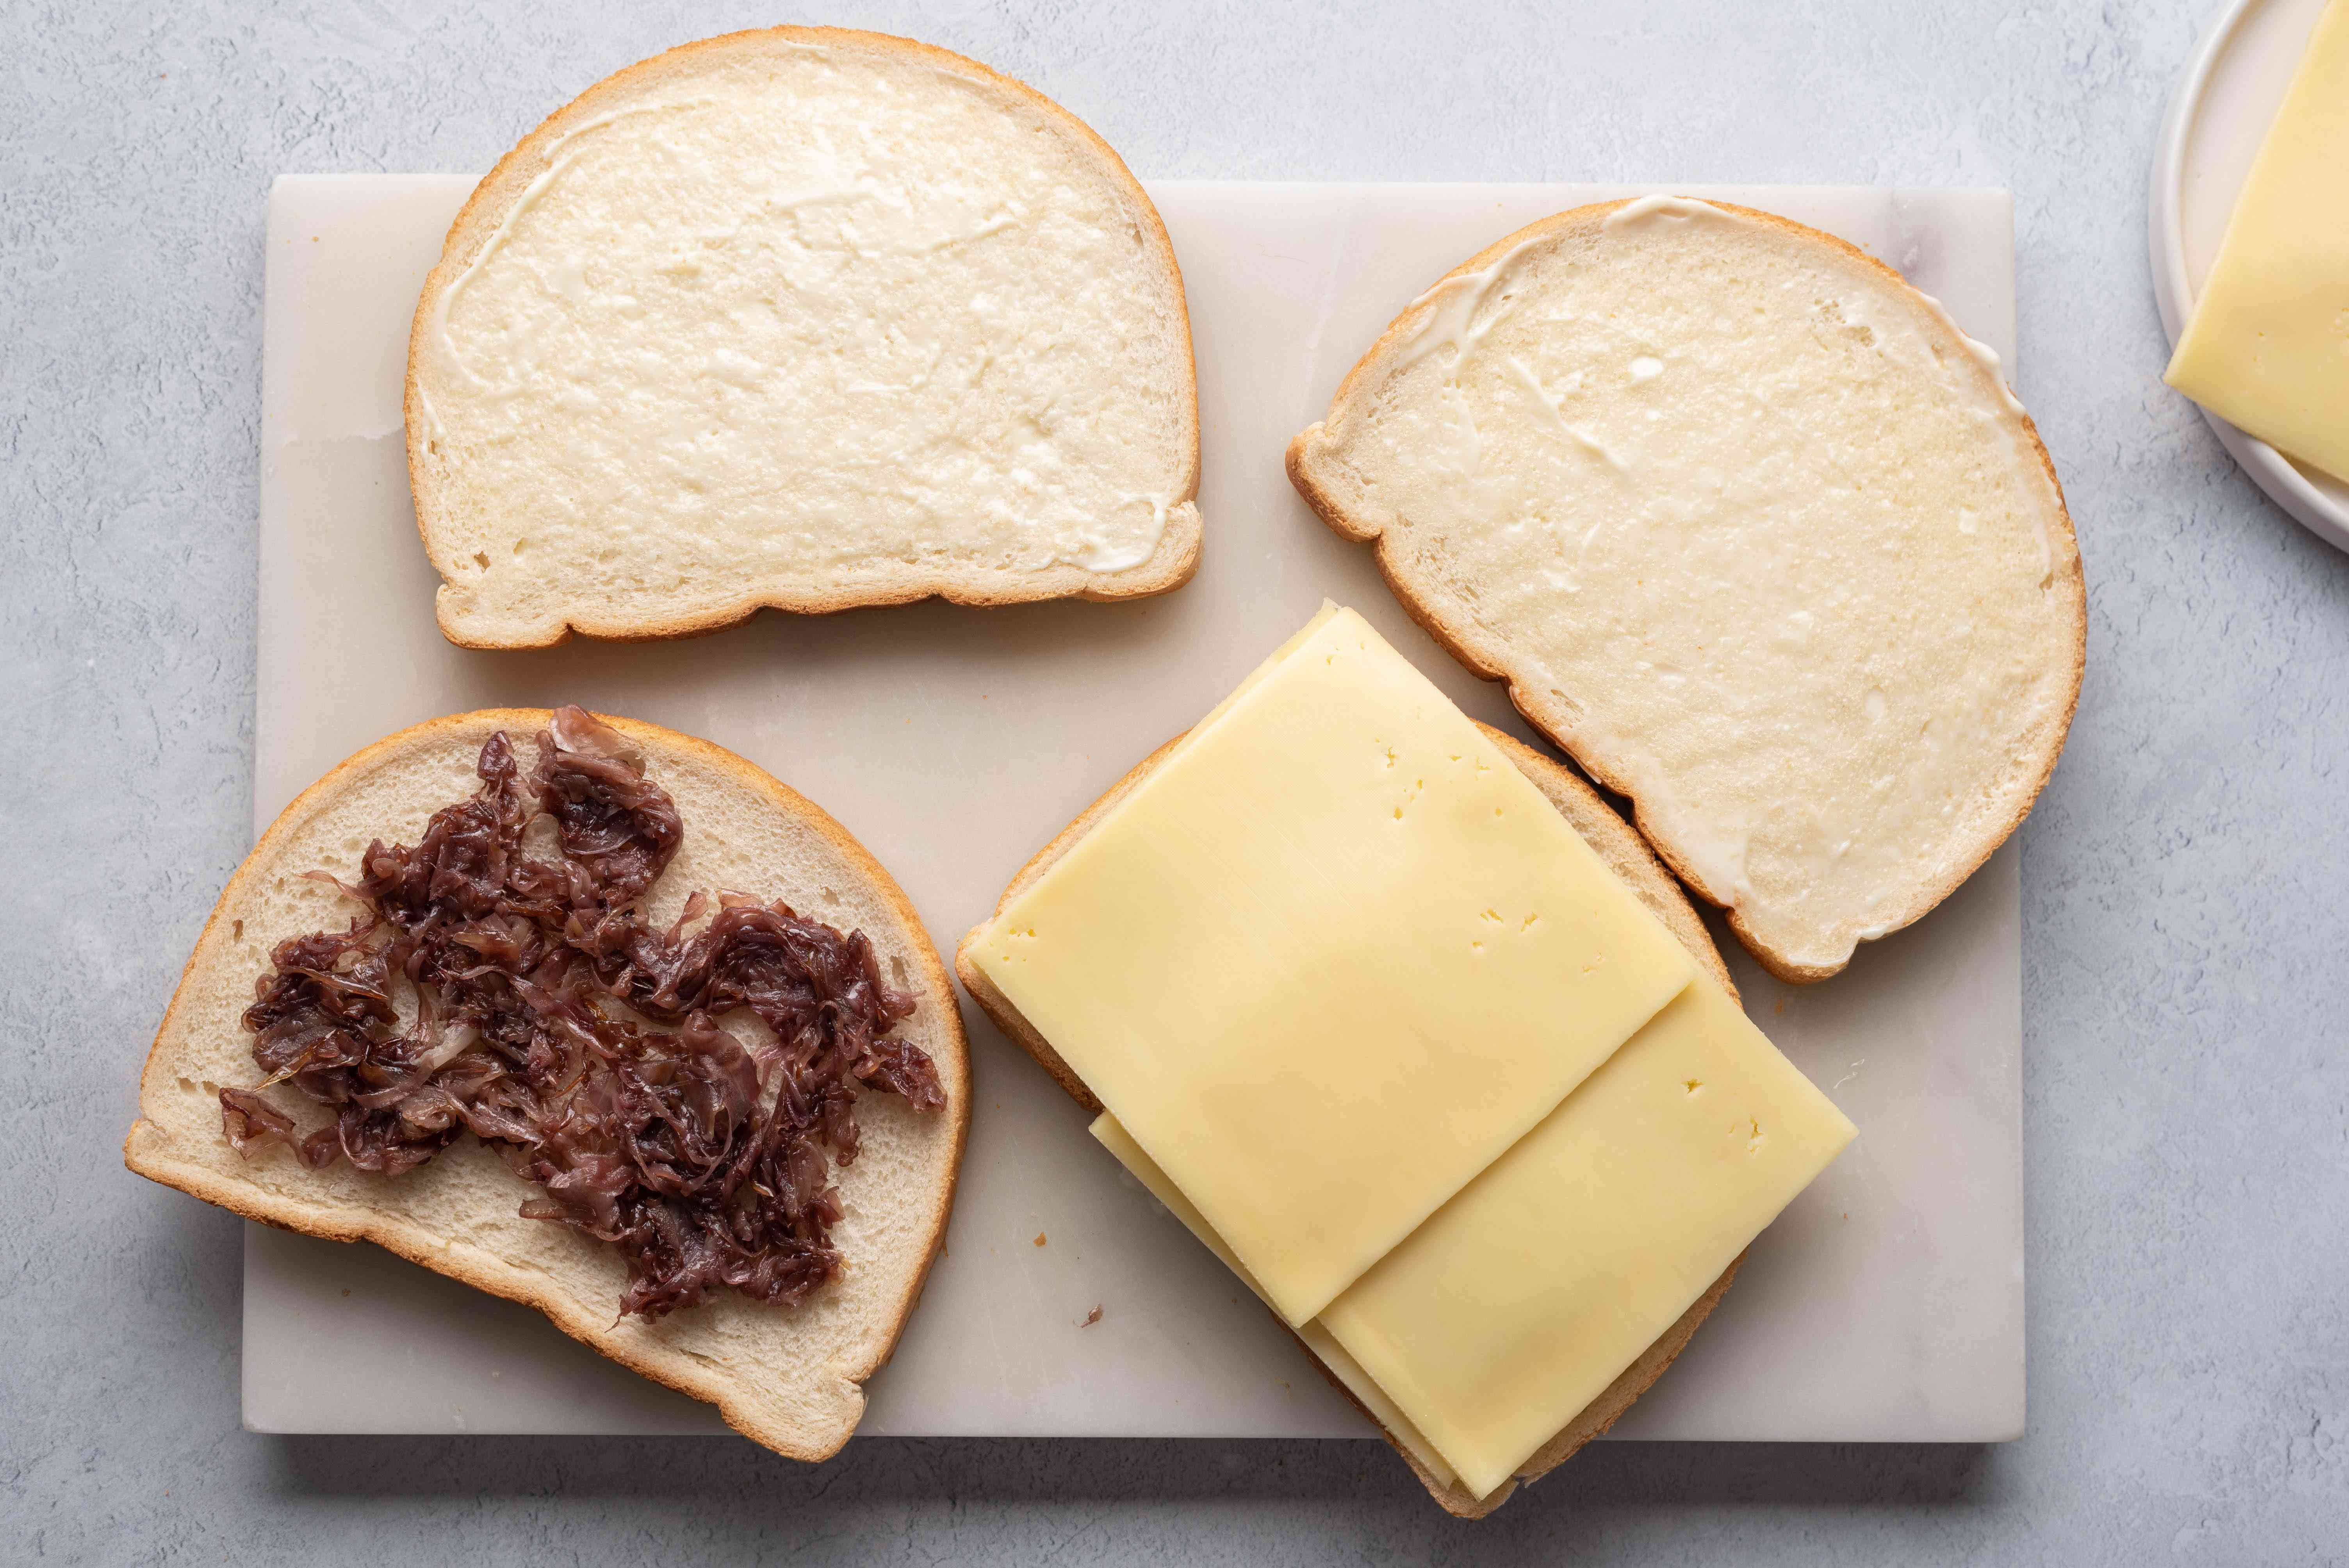 bread slices being topped with caramelized onion on one side and cheese on the other